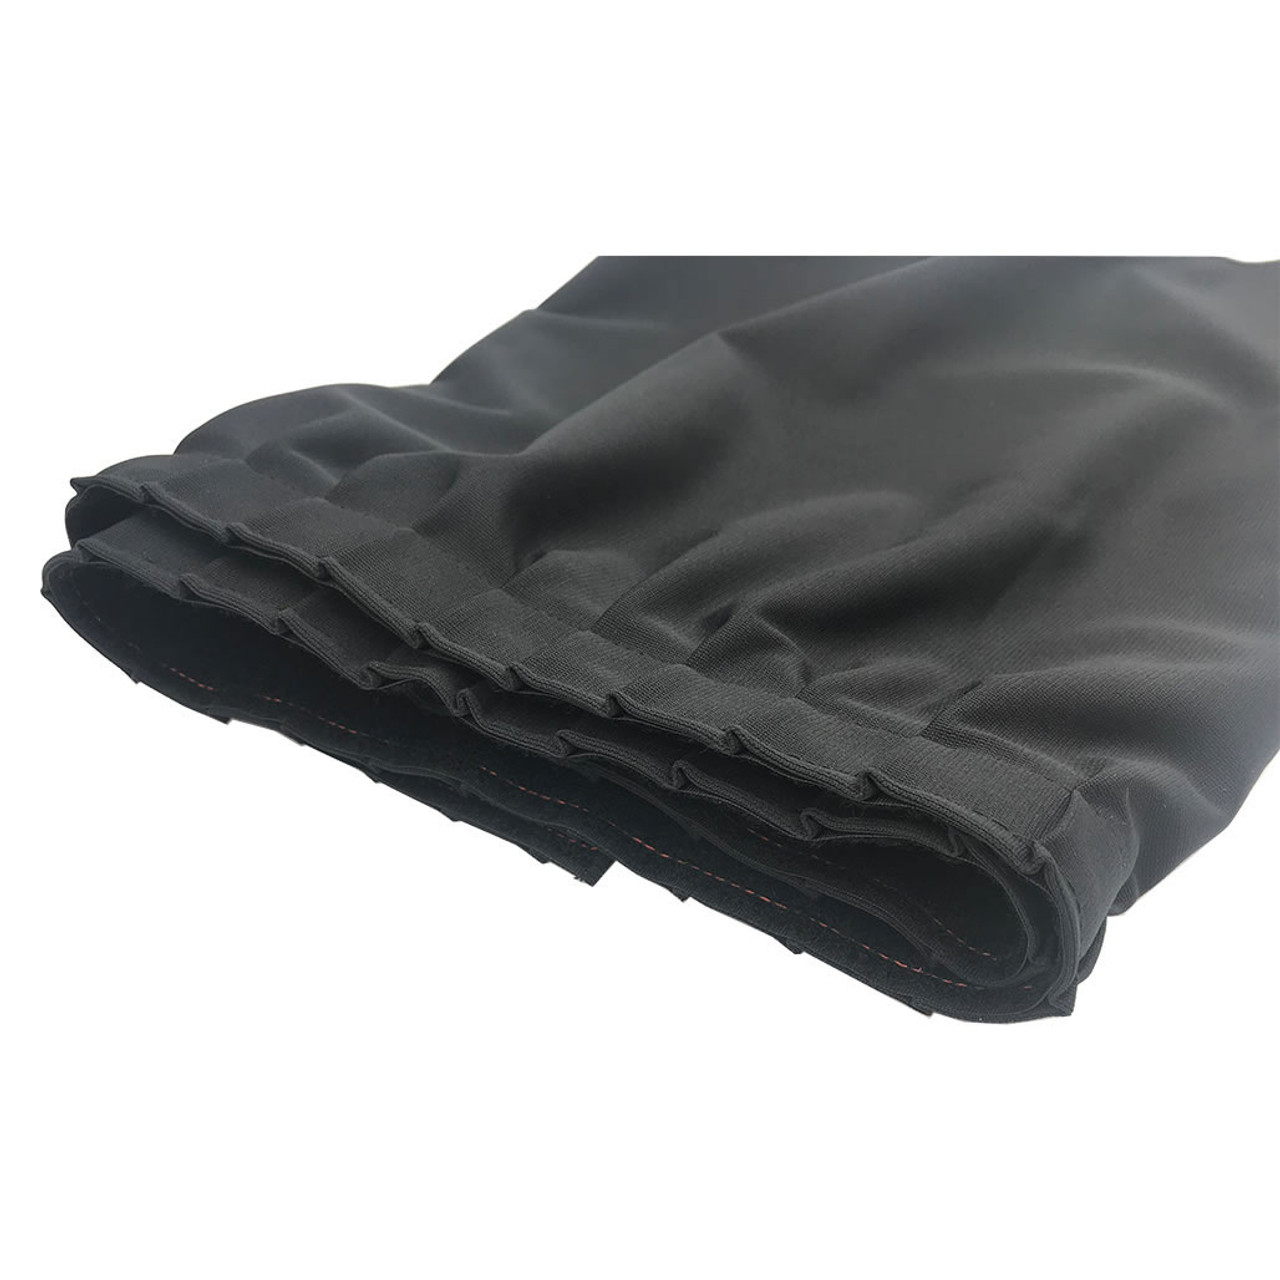 40 Inches High Best Value Black Expo Pleat Polyester Stage Skirting with Velcro. FR Rated. - Close up of Expo/Mini-Accordion Pleat.